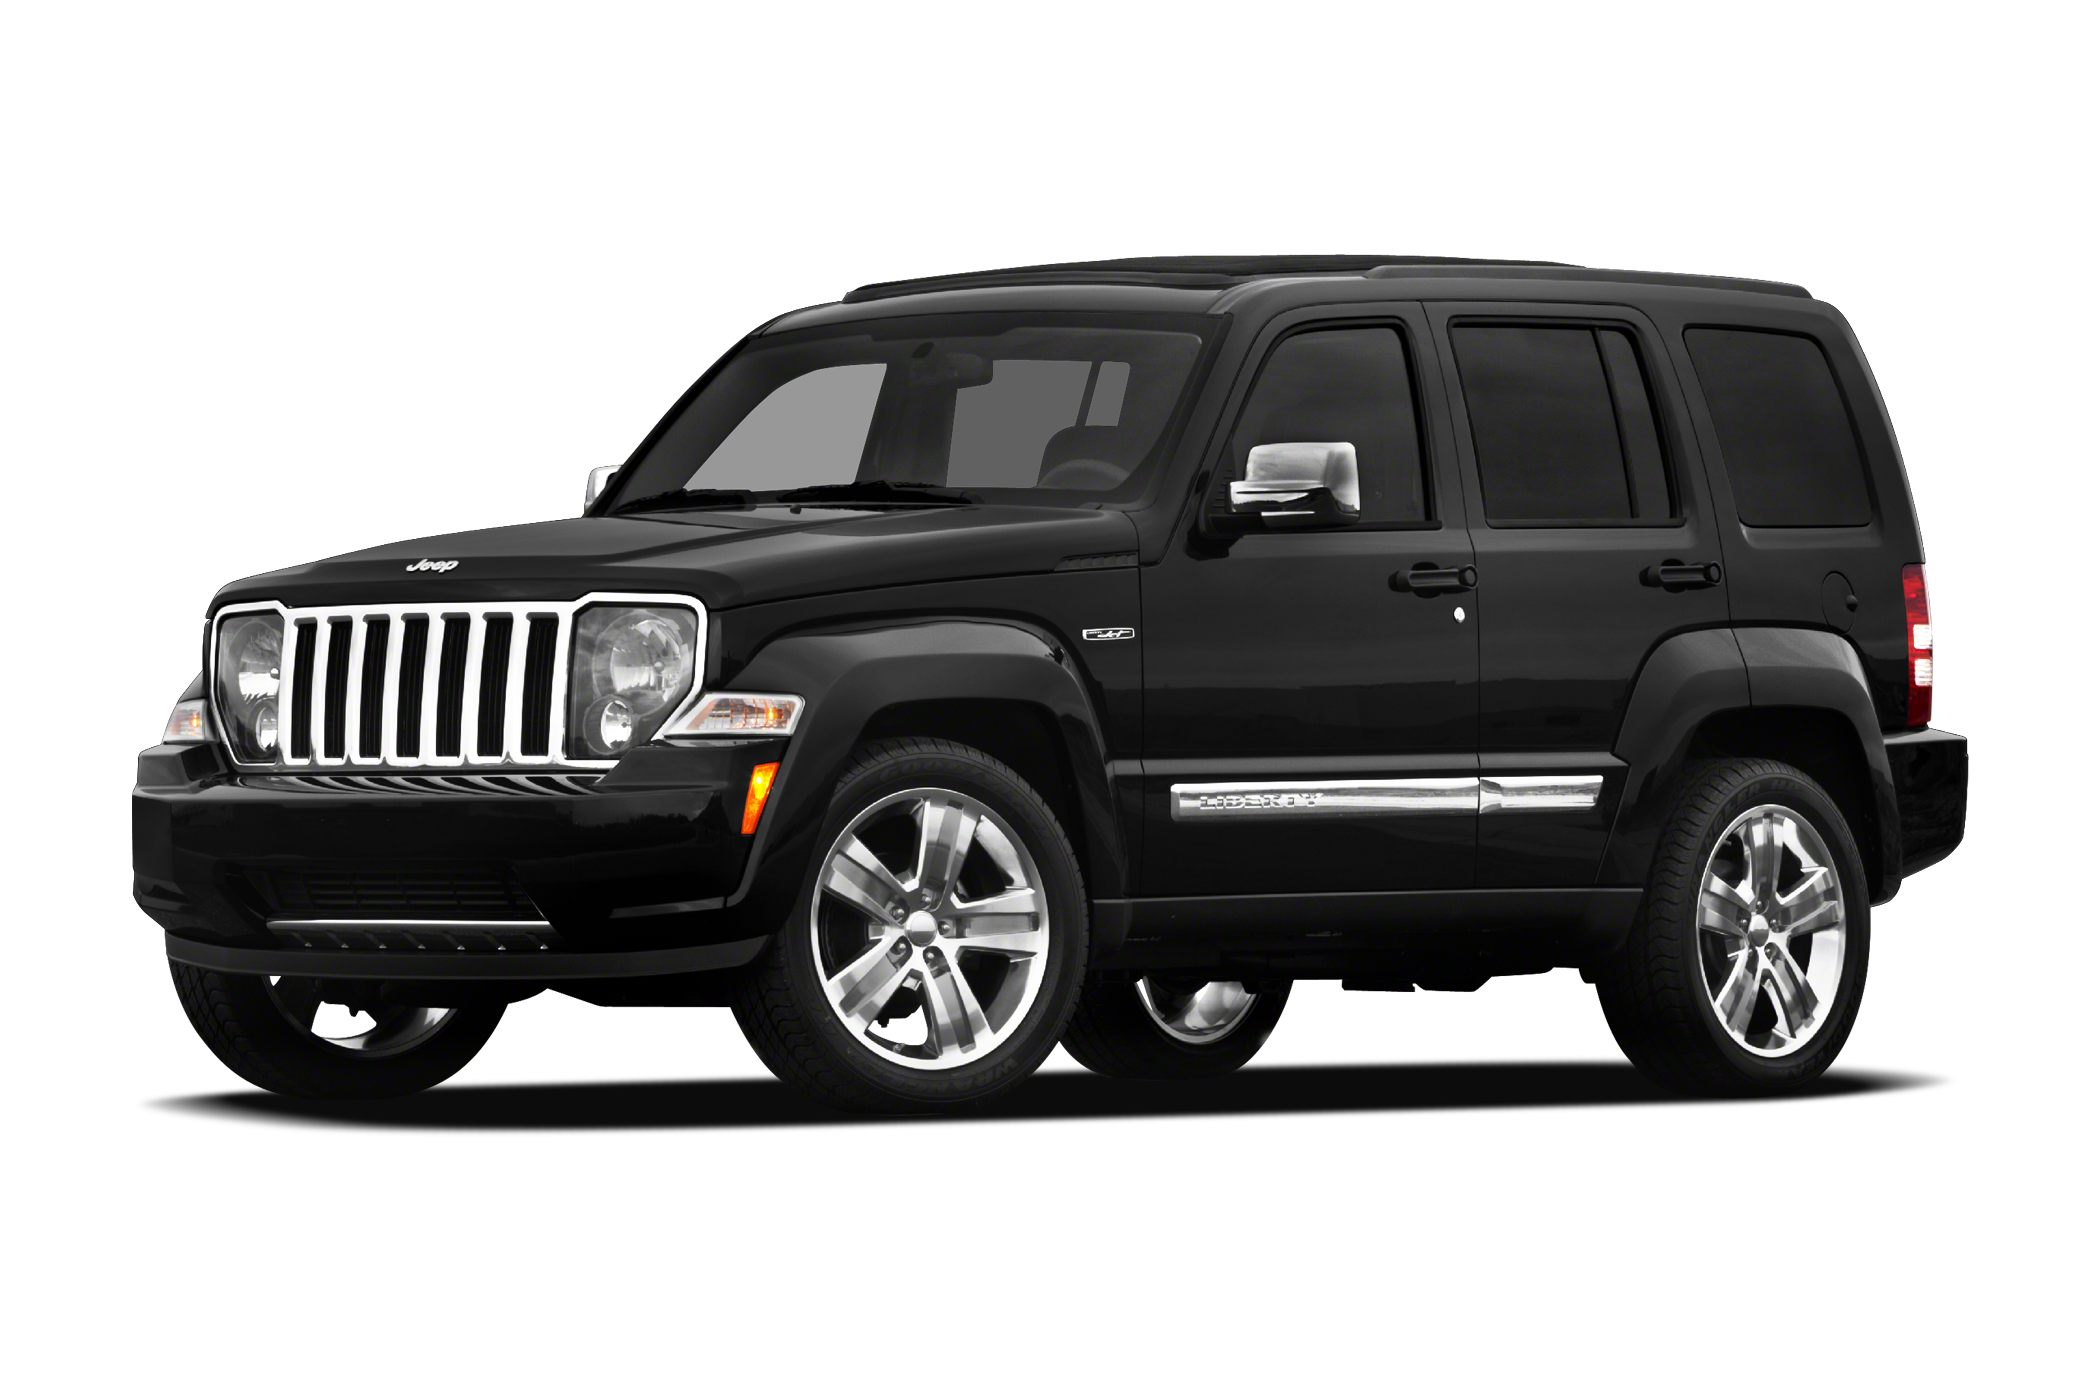 2012 Jeep Liberty Limited Jet Edition Miles 77675Color Black Stock 17CK690B VIN 1C4PJMFK6CW1